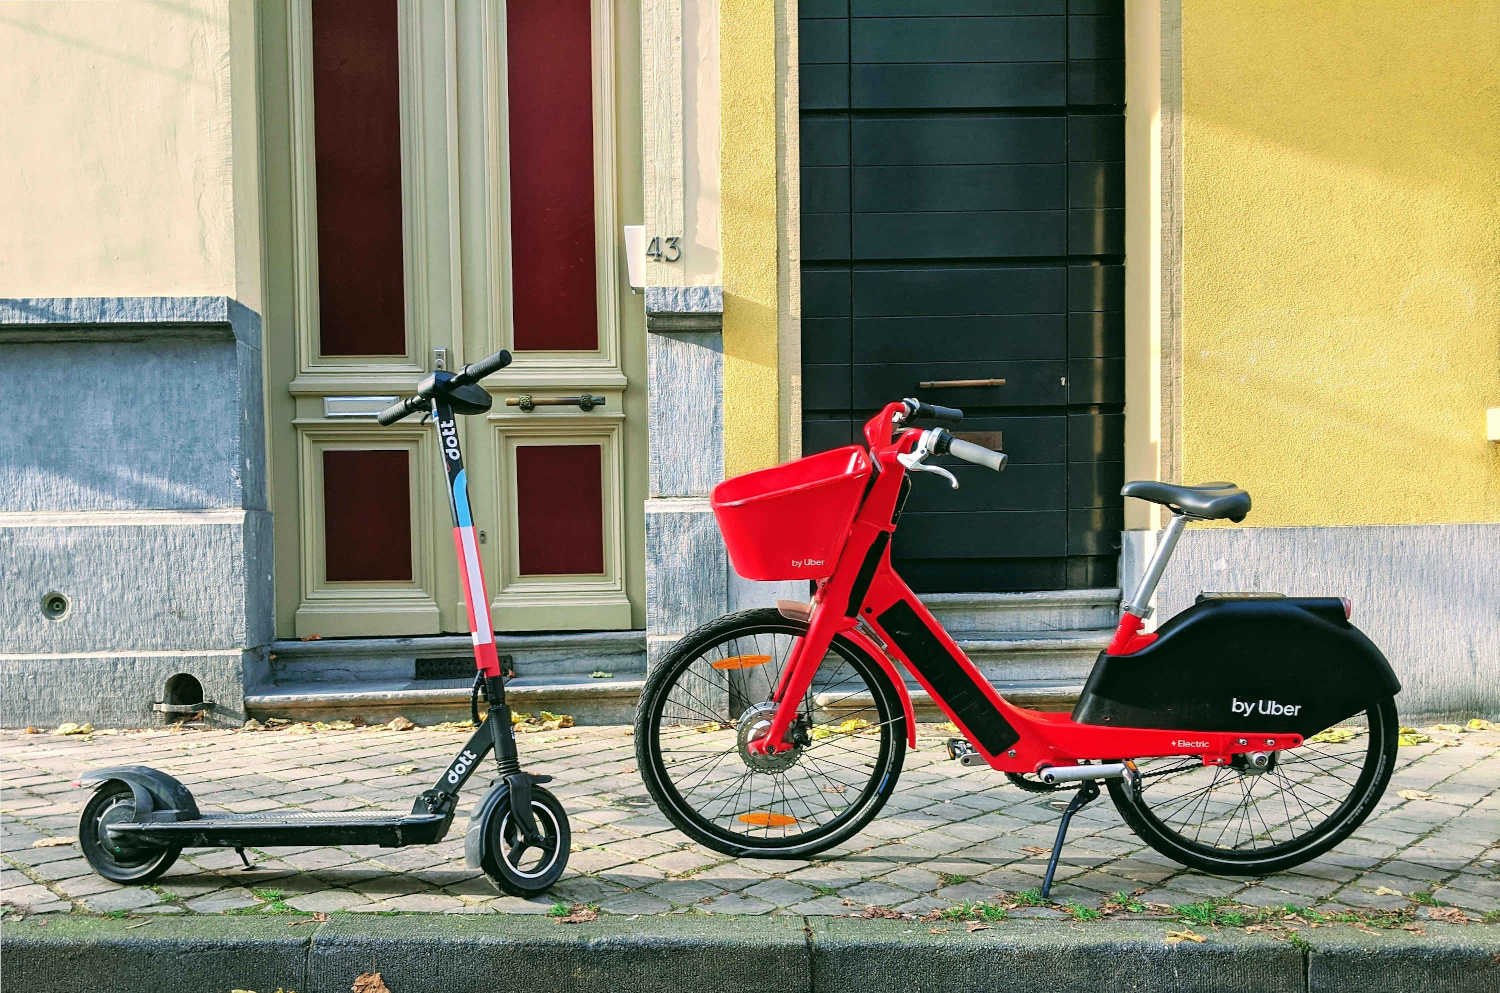 An electric scooter and an electric bike stand opposite to each other on a street.